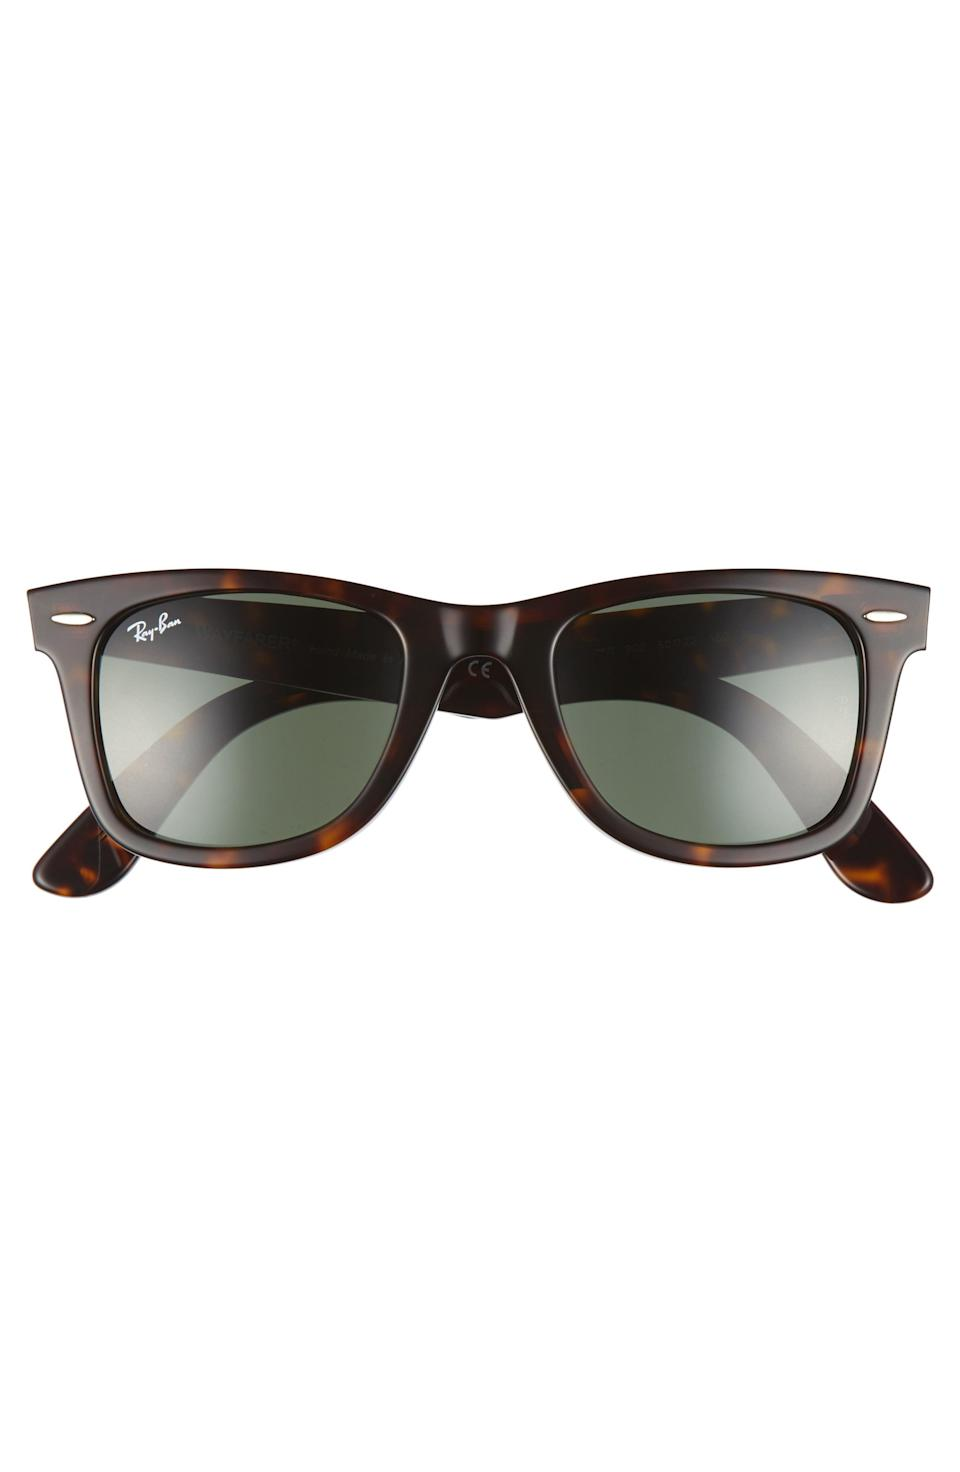 """<p><strong>RAY-BAN</strong></p><p>nordstrom.com</p><p><a href=""""https://go.redirectingat.com?id=74968X1596630&url=https%3A%2F%2Fshop.nordstrom.com%2Fs%2Fray-ban-classic-wayfarer-50mm-sunglasses%2F3290895&sref=https%3A%2F%2Fwww.menshealth.com%2Fstyle%2Fg33510339%2Fnordstrom-anniversary-sale-2020%2F"""" rel=""""nofollow noopener"""" target=""""_blank"""" data-ylk=""""slk:BUY IT HERE"""" class=""""link rapid-noclick-resp"""">BUY IT HERE</a></p><p><del><strong>$154</strong></del> <strong>$99.90 </strong><strong>(35% off)</strong></p><p>You're never fully dressed without a great pair of sunglasses. The classsic style is widely known to be one of the most flattering frames for any guy's face. </p>"""